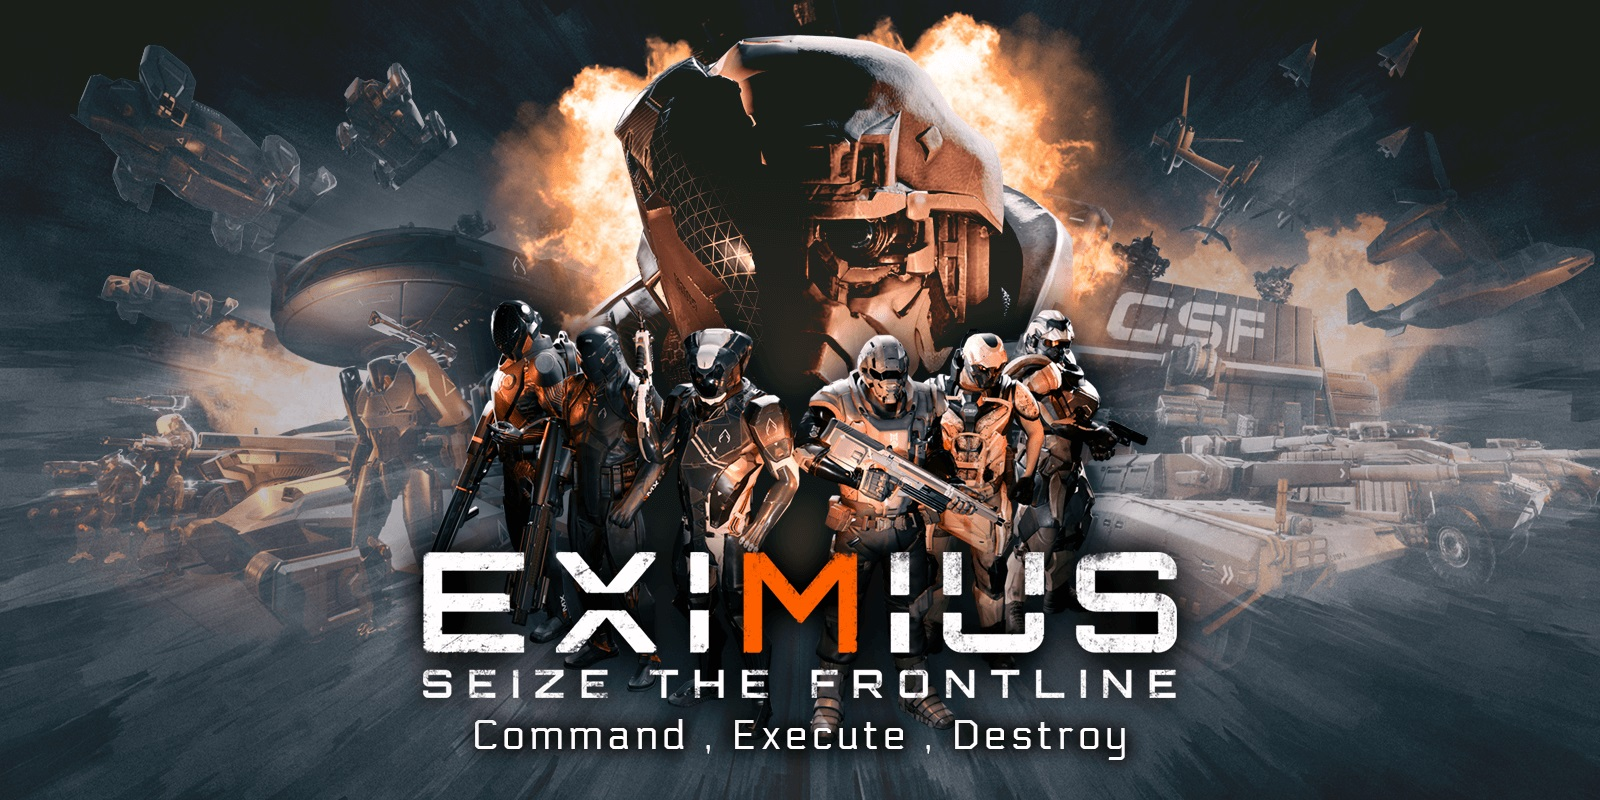 Eximius: Seize the Frontline